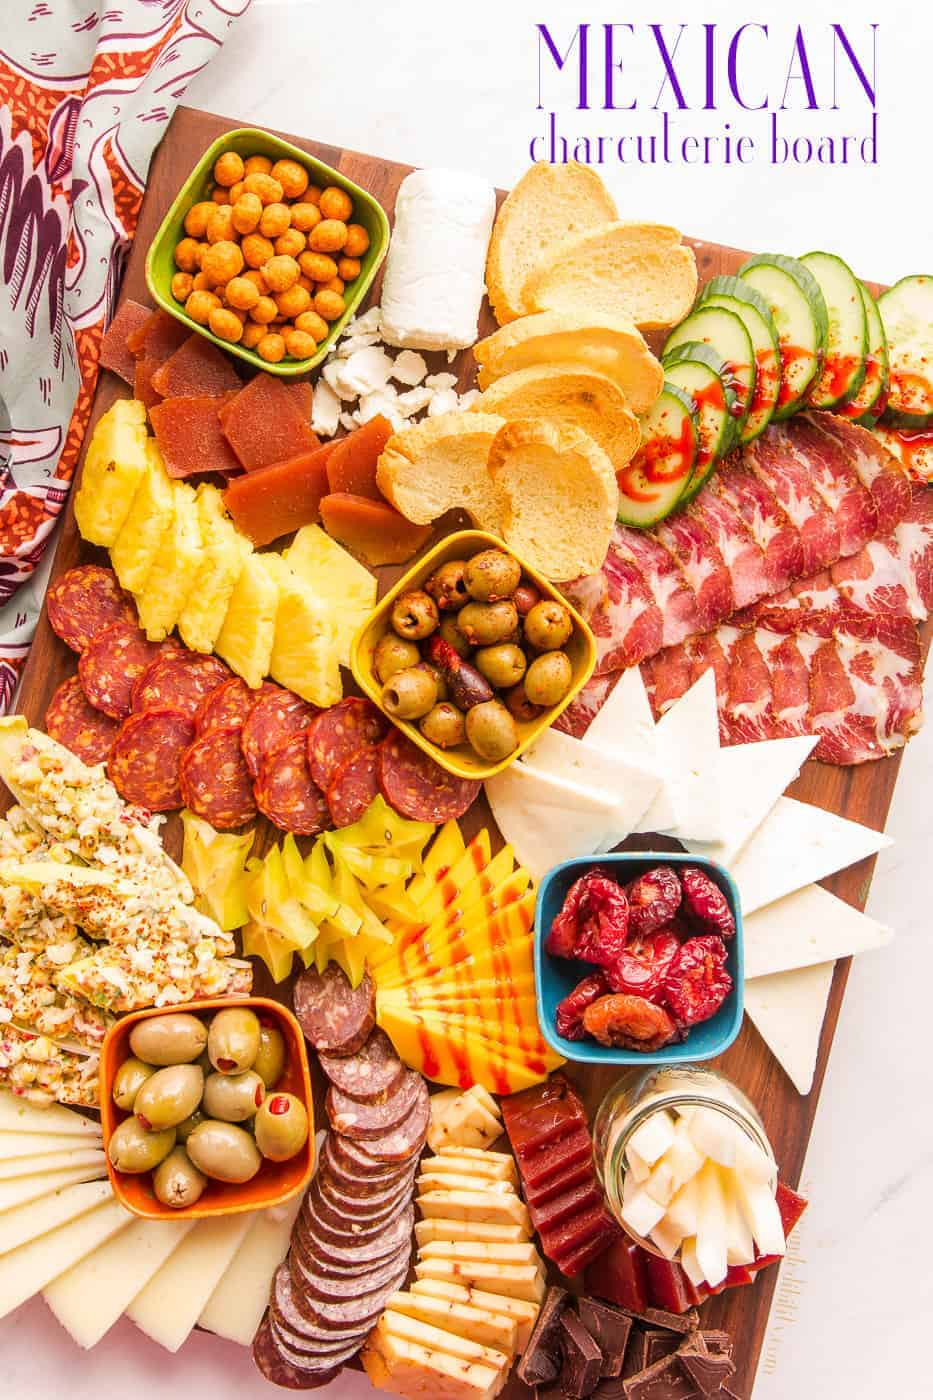 Make your next party unique with this Mexican-Inspired Charcuterie Board. Forget the same old meat and cheese board, this head-turner is loaded with cured meats popular in Mexican cuisine. Pair them with creamy and tangy cheeses and condiments lifted straight from antojitos shops and your next fiesta will be the one people rave about. #antojitos #charcuterieboard #meatandcheeseboard #chorizo #salami #panela #manchego #watergrows #texascorn #NRCSTexas #sponsored via @ediblesense